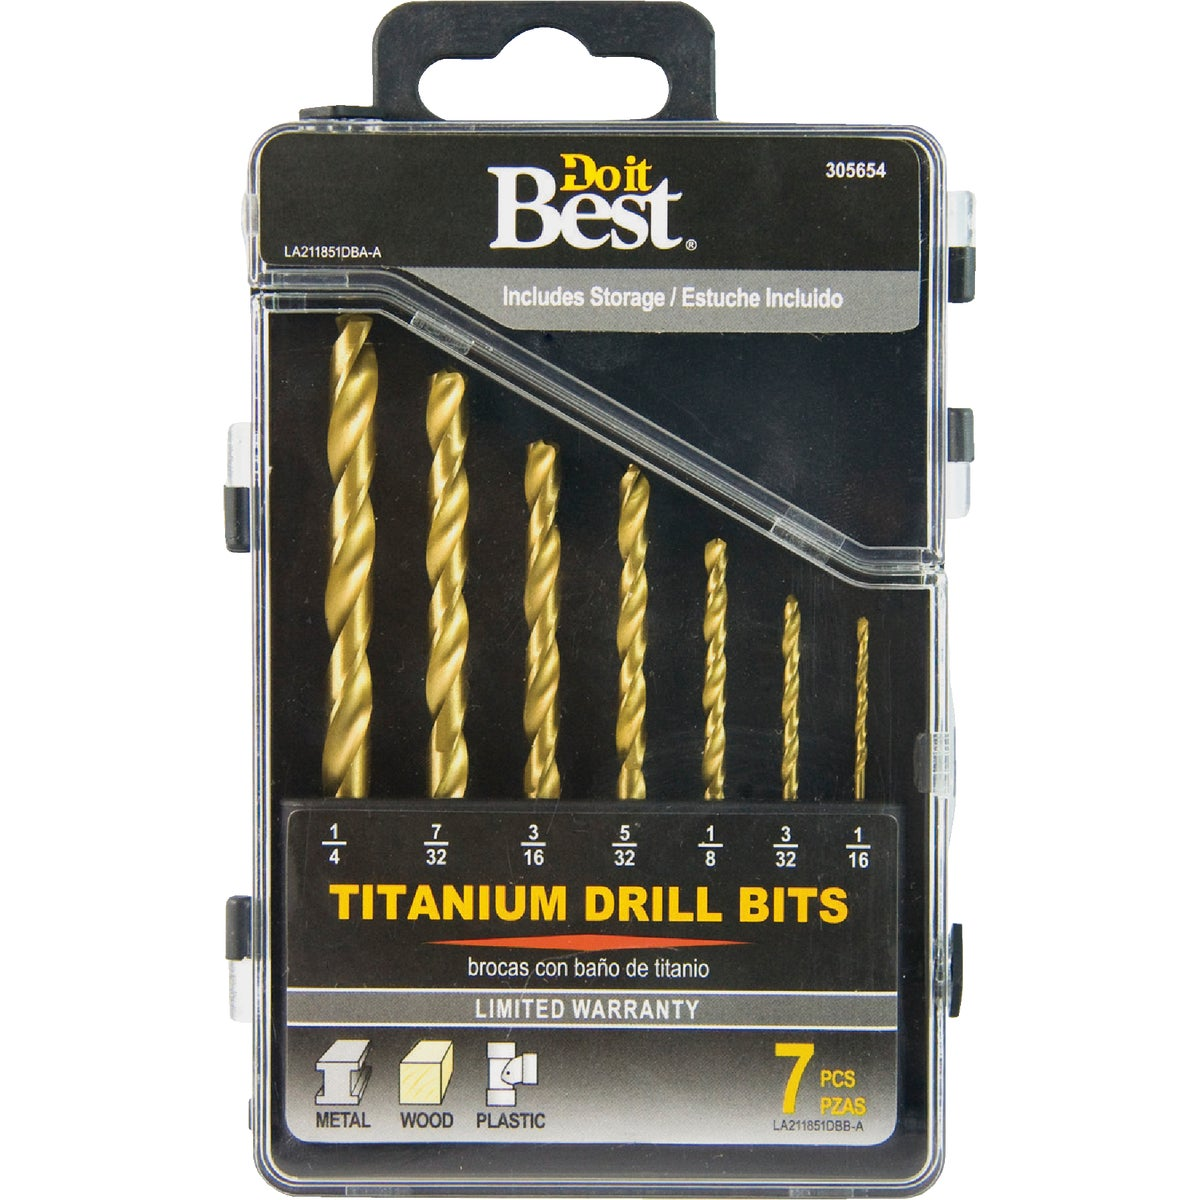 7PC TITANIUM BIT SET - 211851DB by Mibro/gs